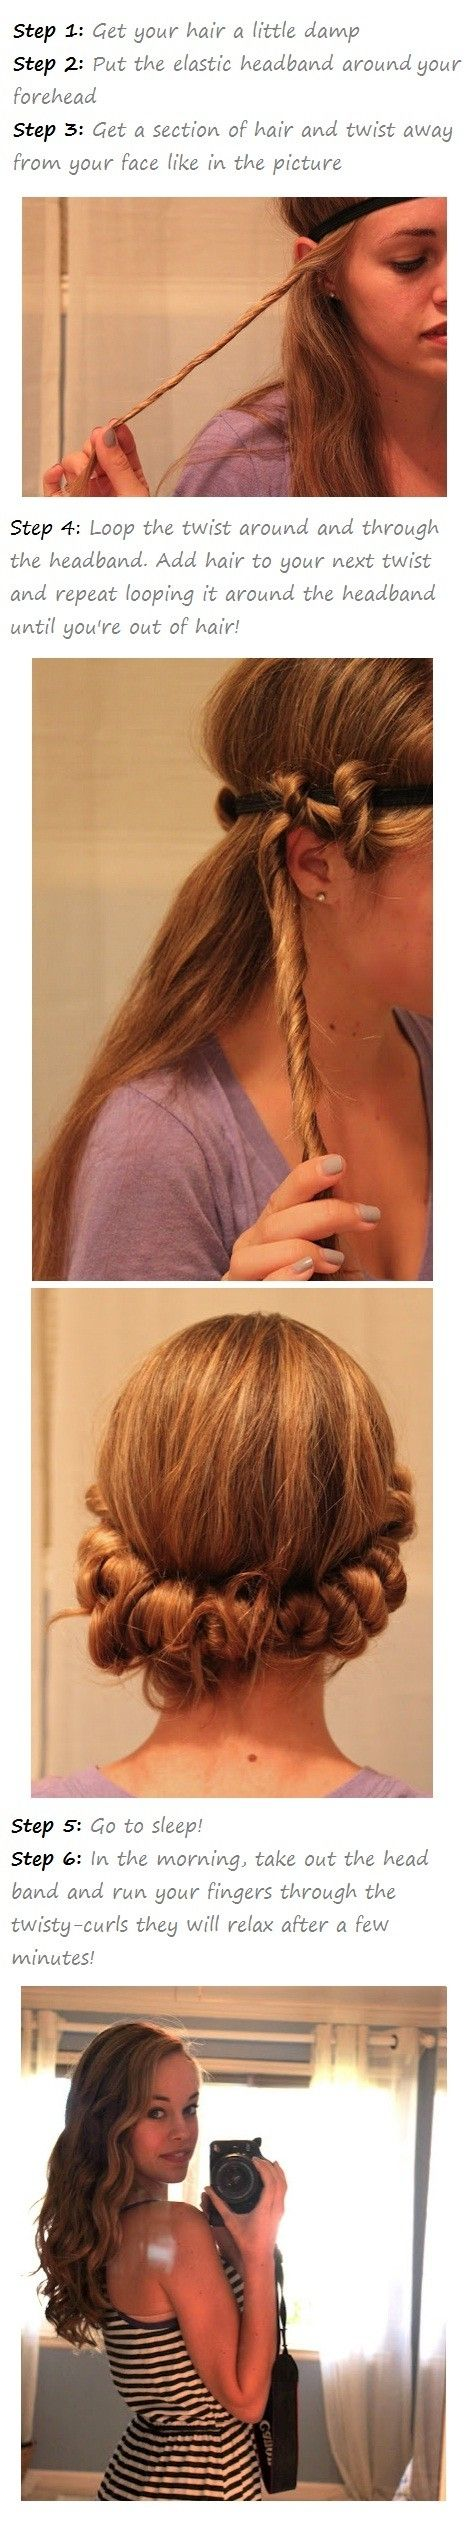 15 Easy No-Heat Hairstyles For Dirty Hair fast and easy over night curls